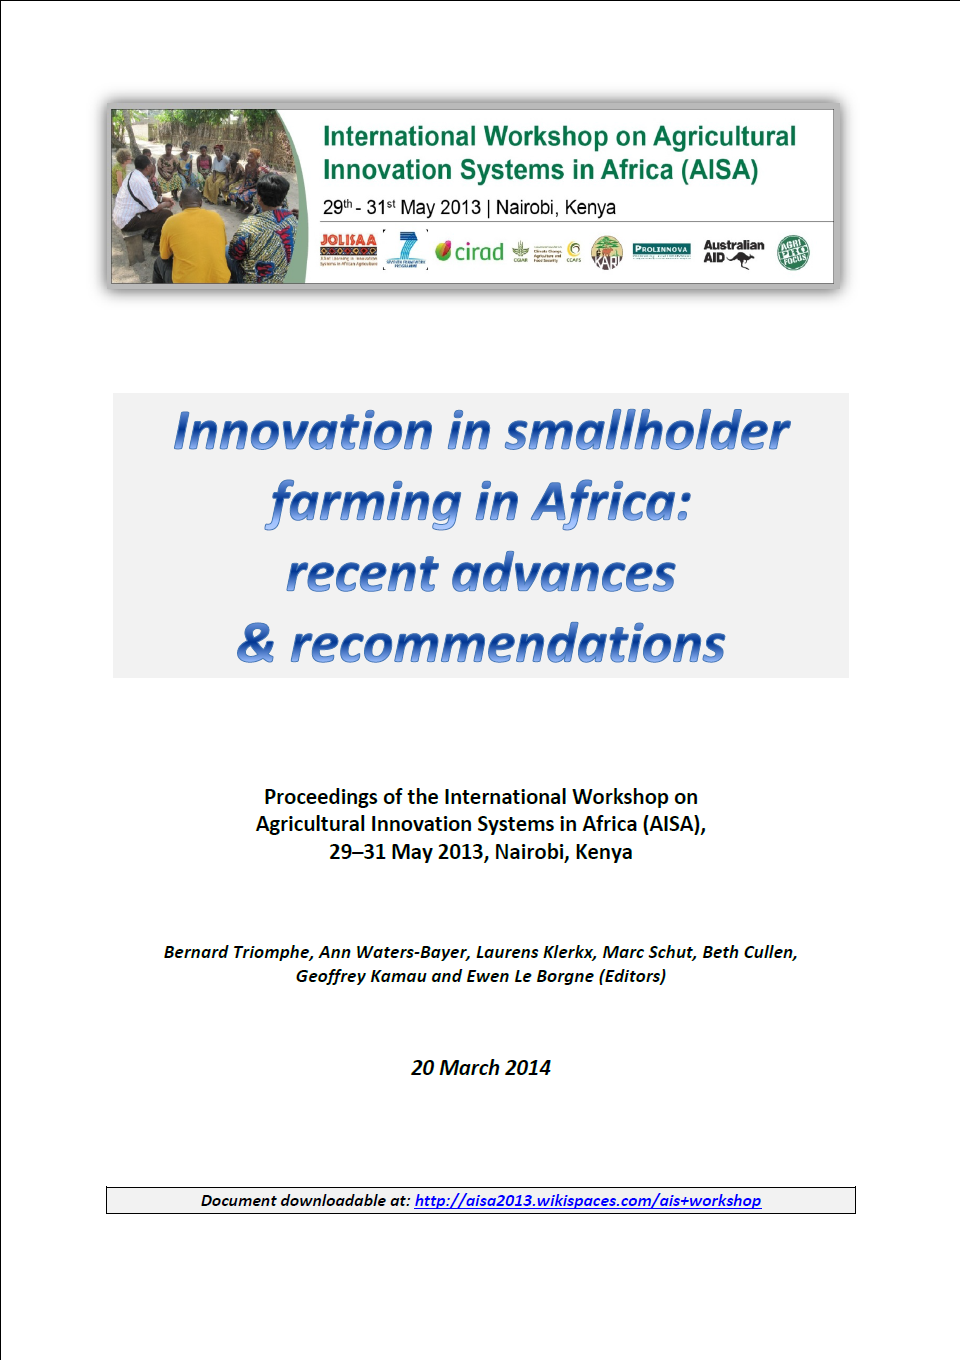 AISA innovation in smallholder farming